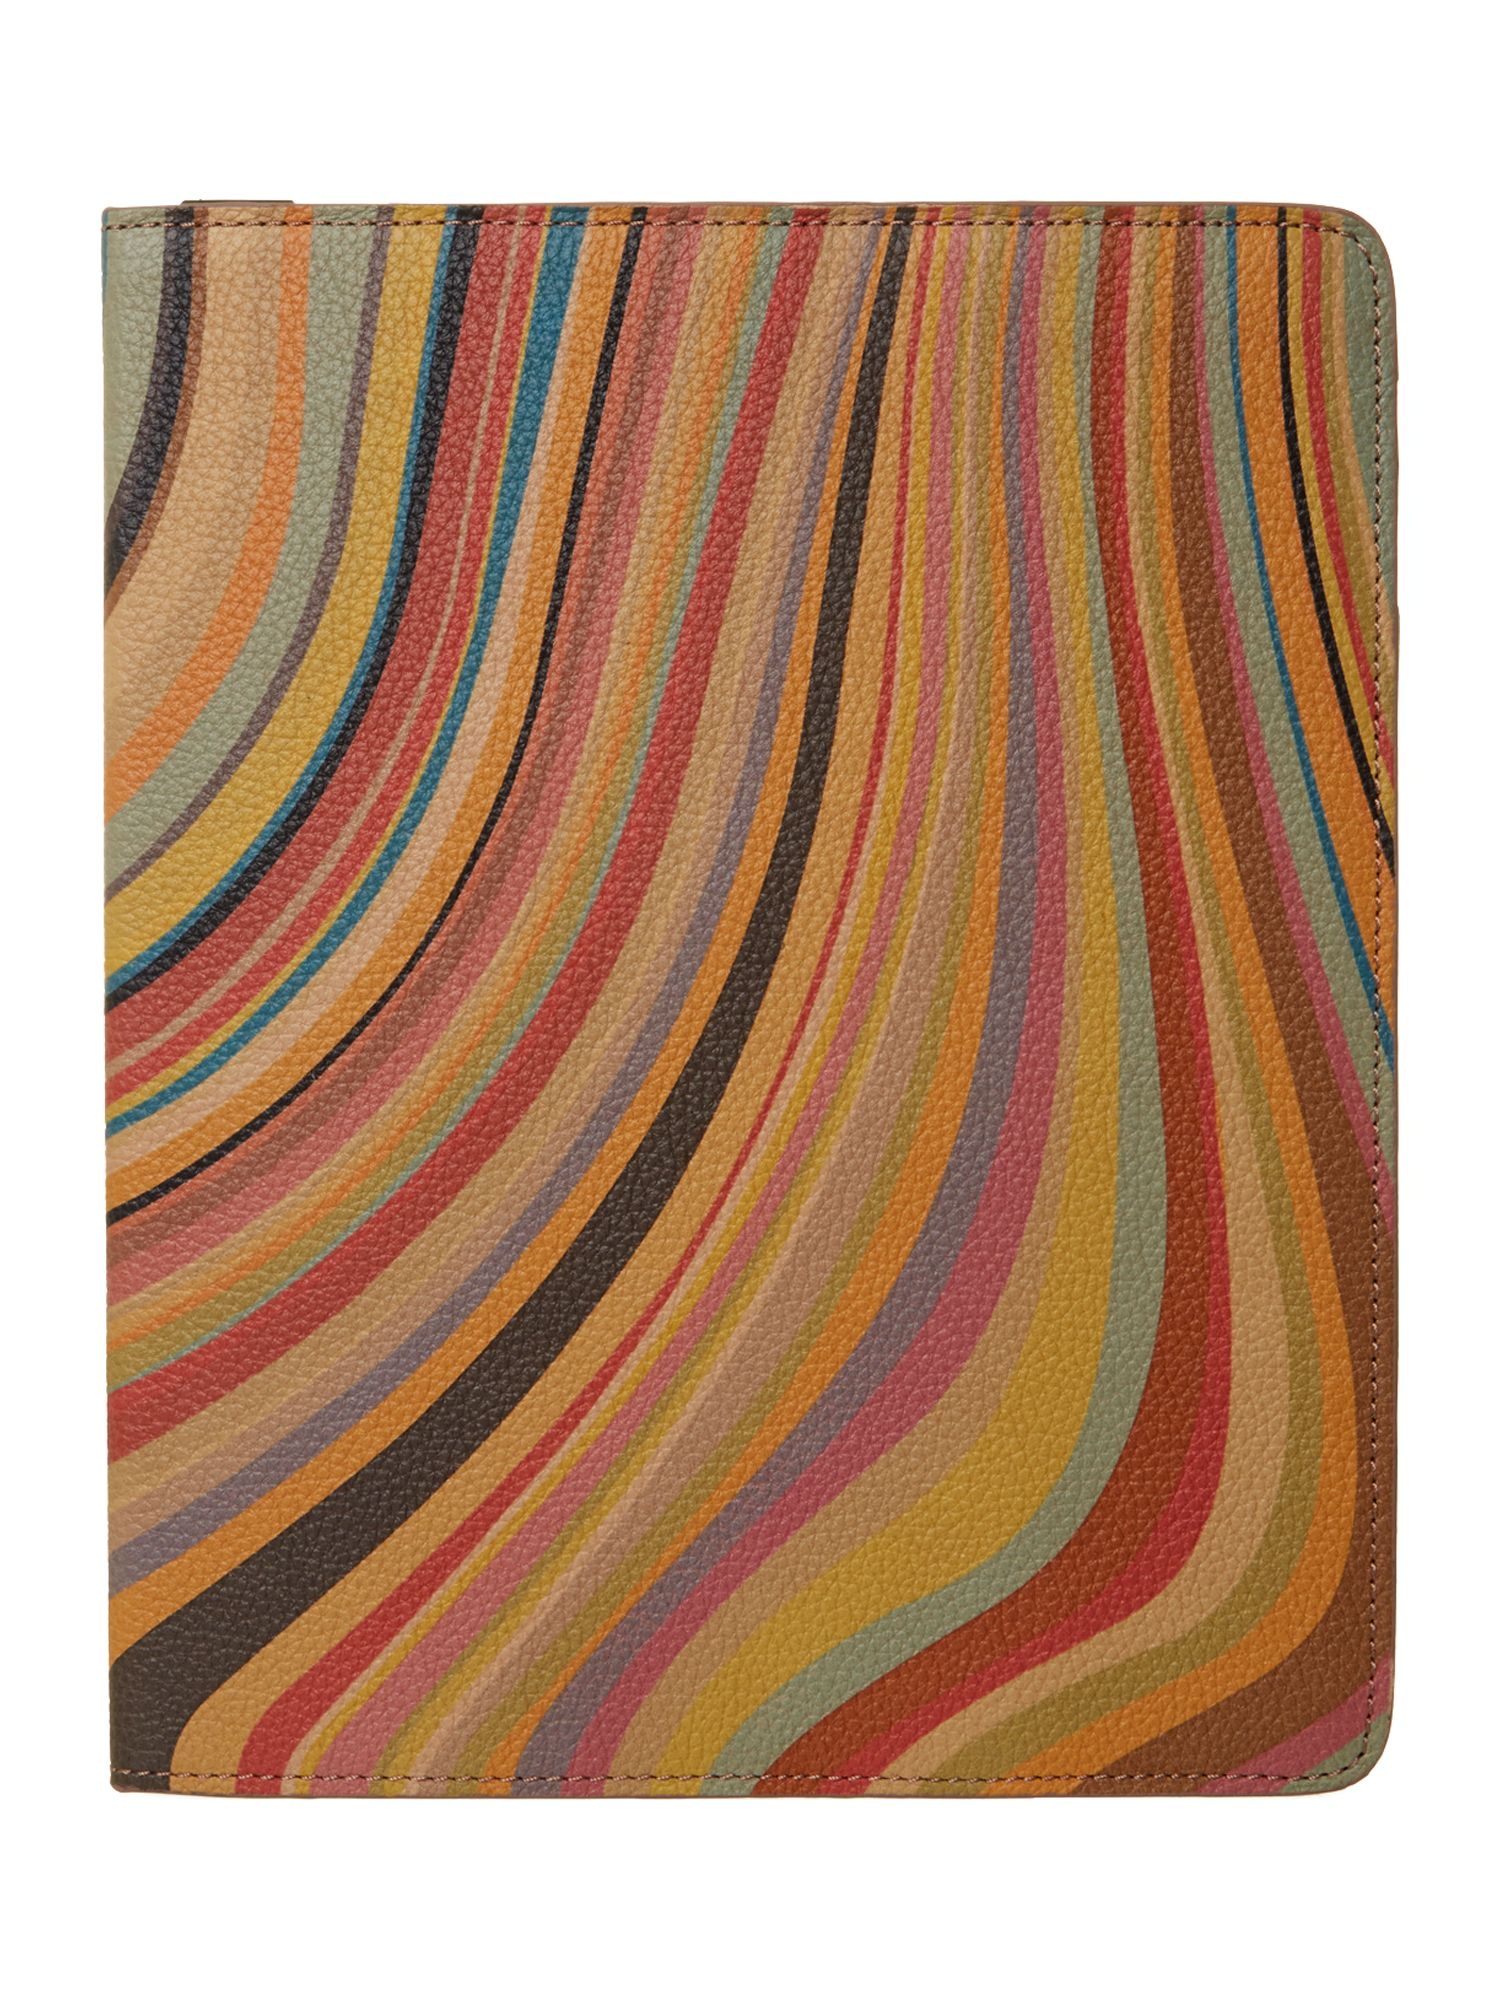 Swirl print iPad cover